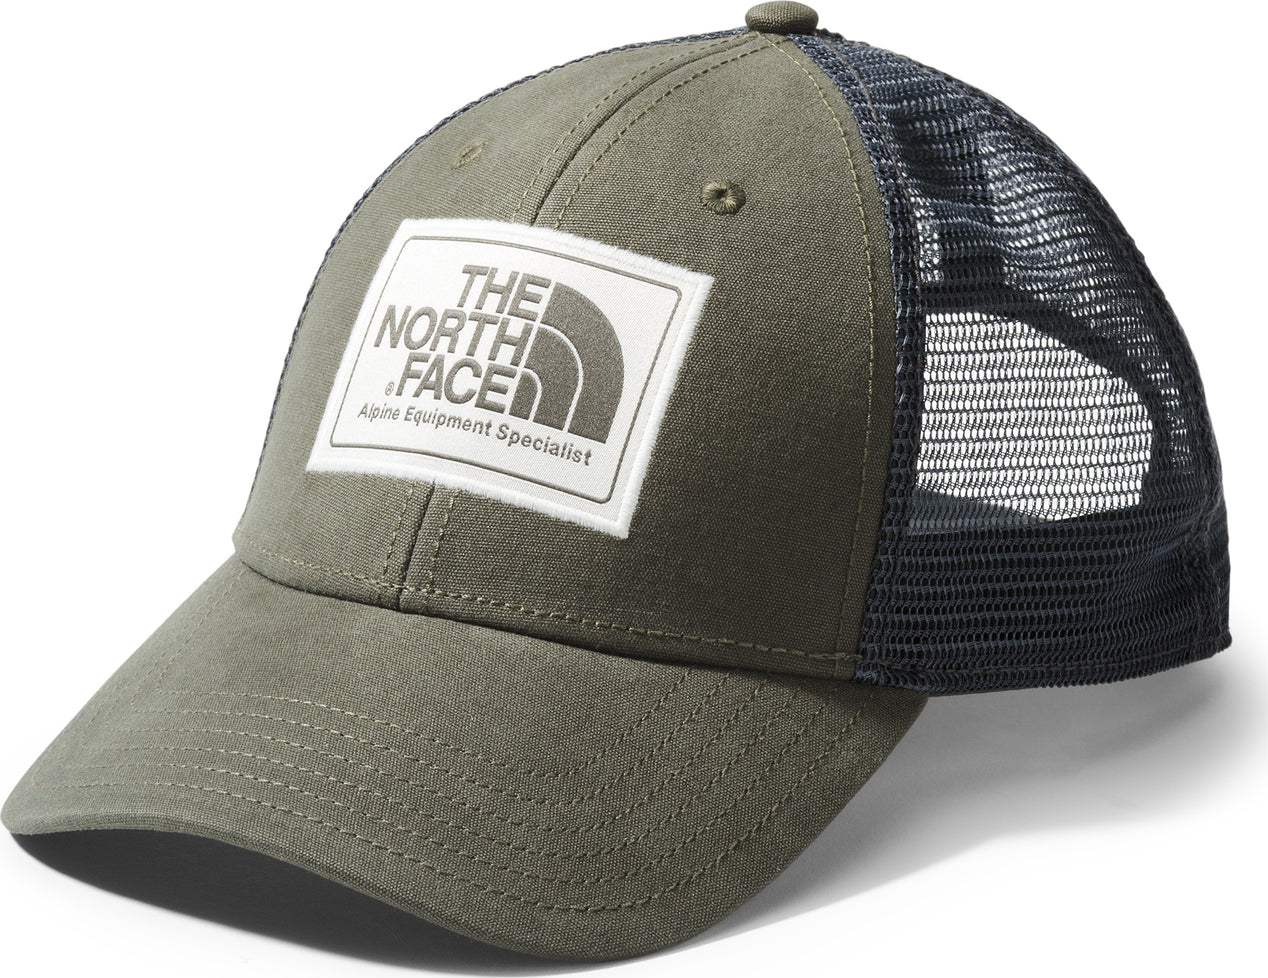 9c35bc24 The North Face Mudder Trucker Hat | Altitude Sports